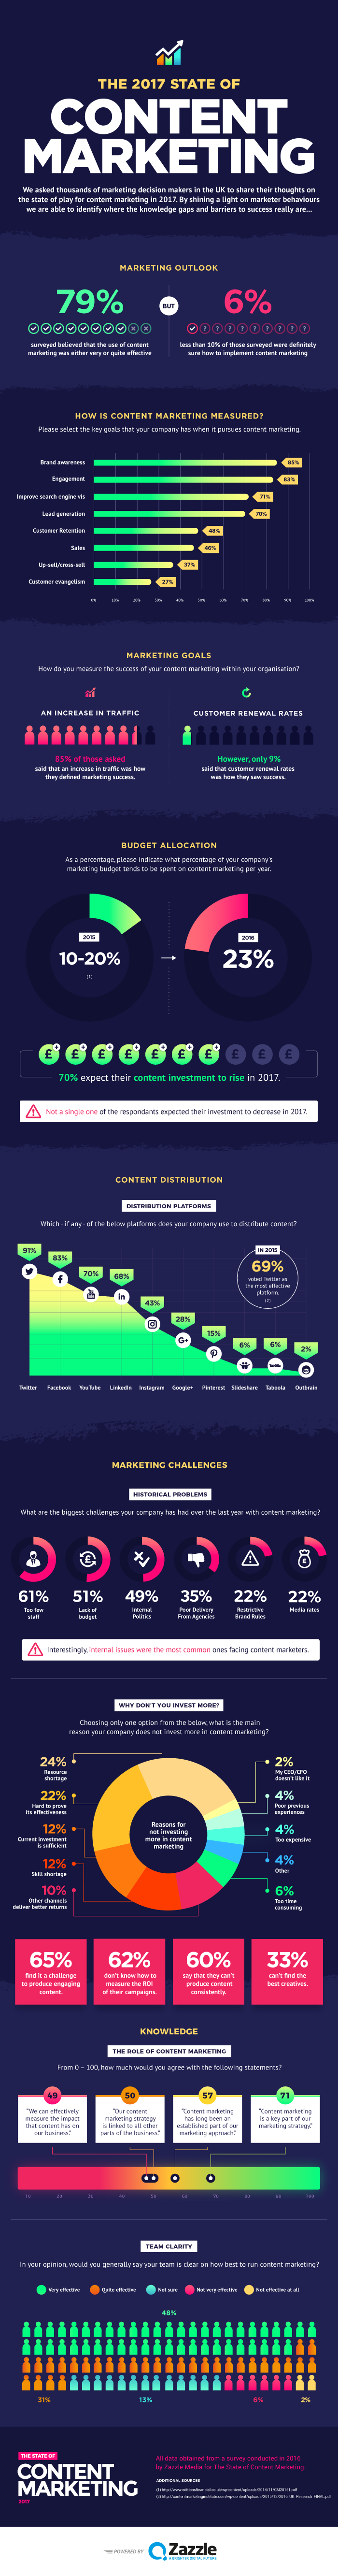 HUBSPOT-IG-STATE_OF_CONTENT_MARKETING_SURVEY.png  Where We Are: The 2017 State of Content Marketing [Infographic] HUBSPOT IG STATE OF CONTENT MARKETING SURVEY